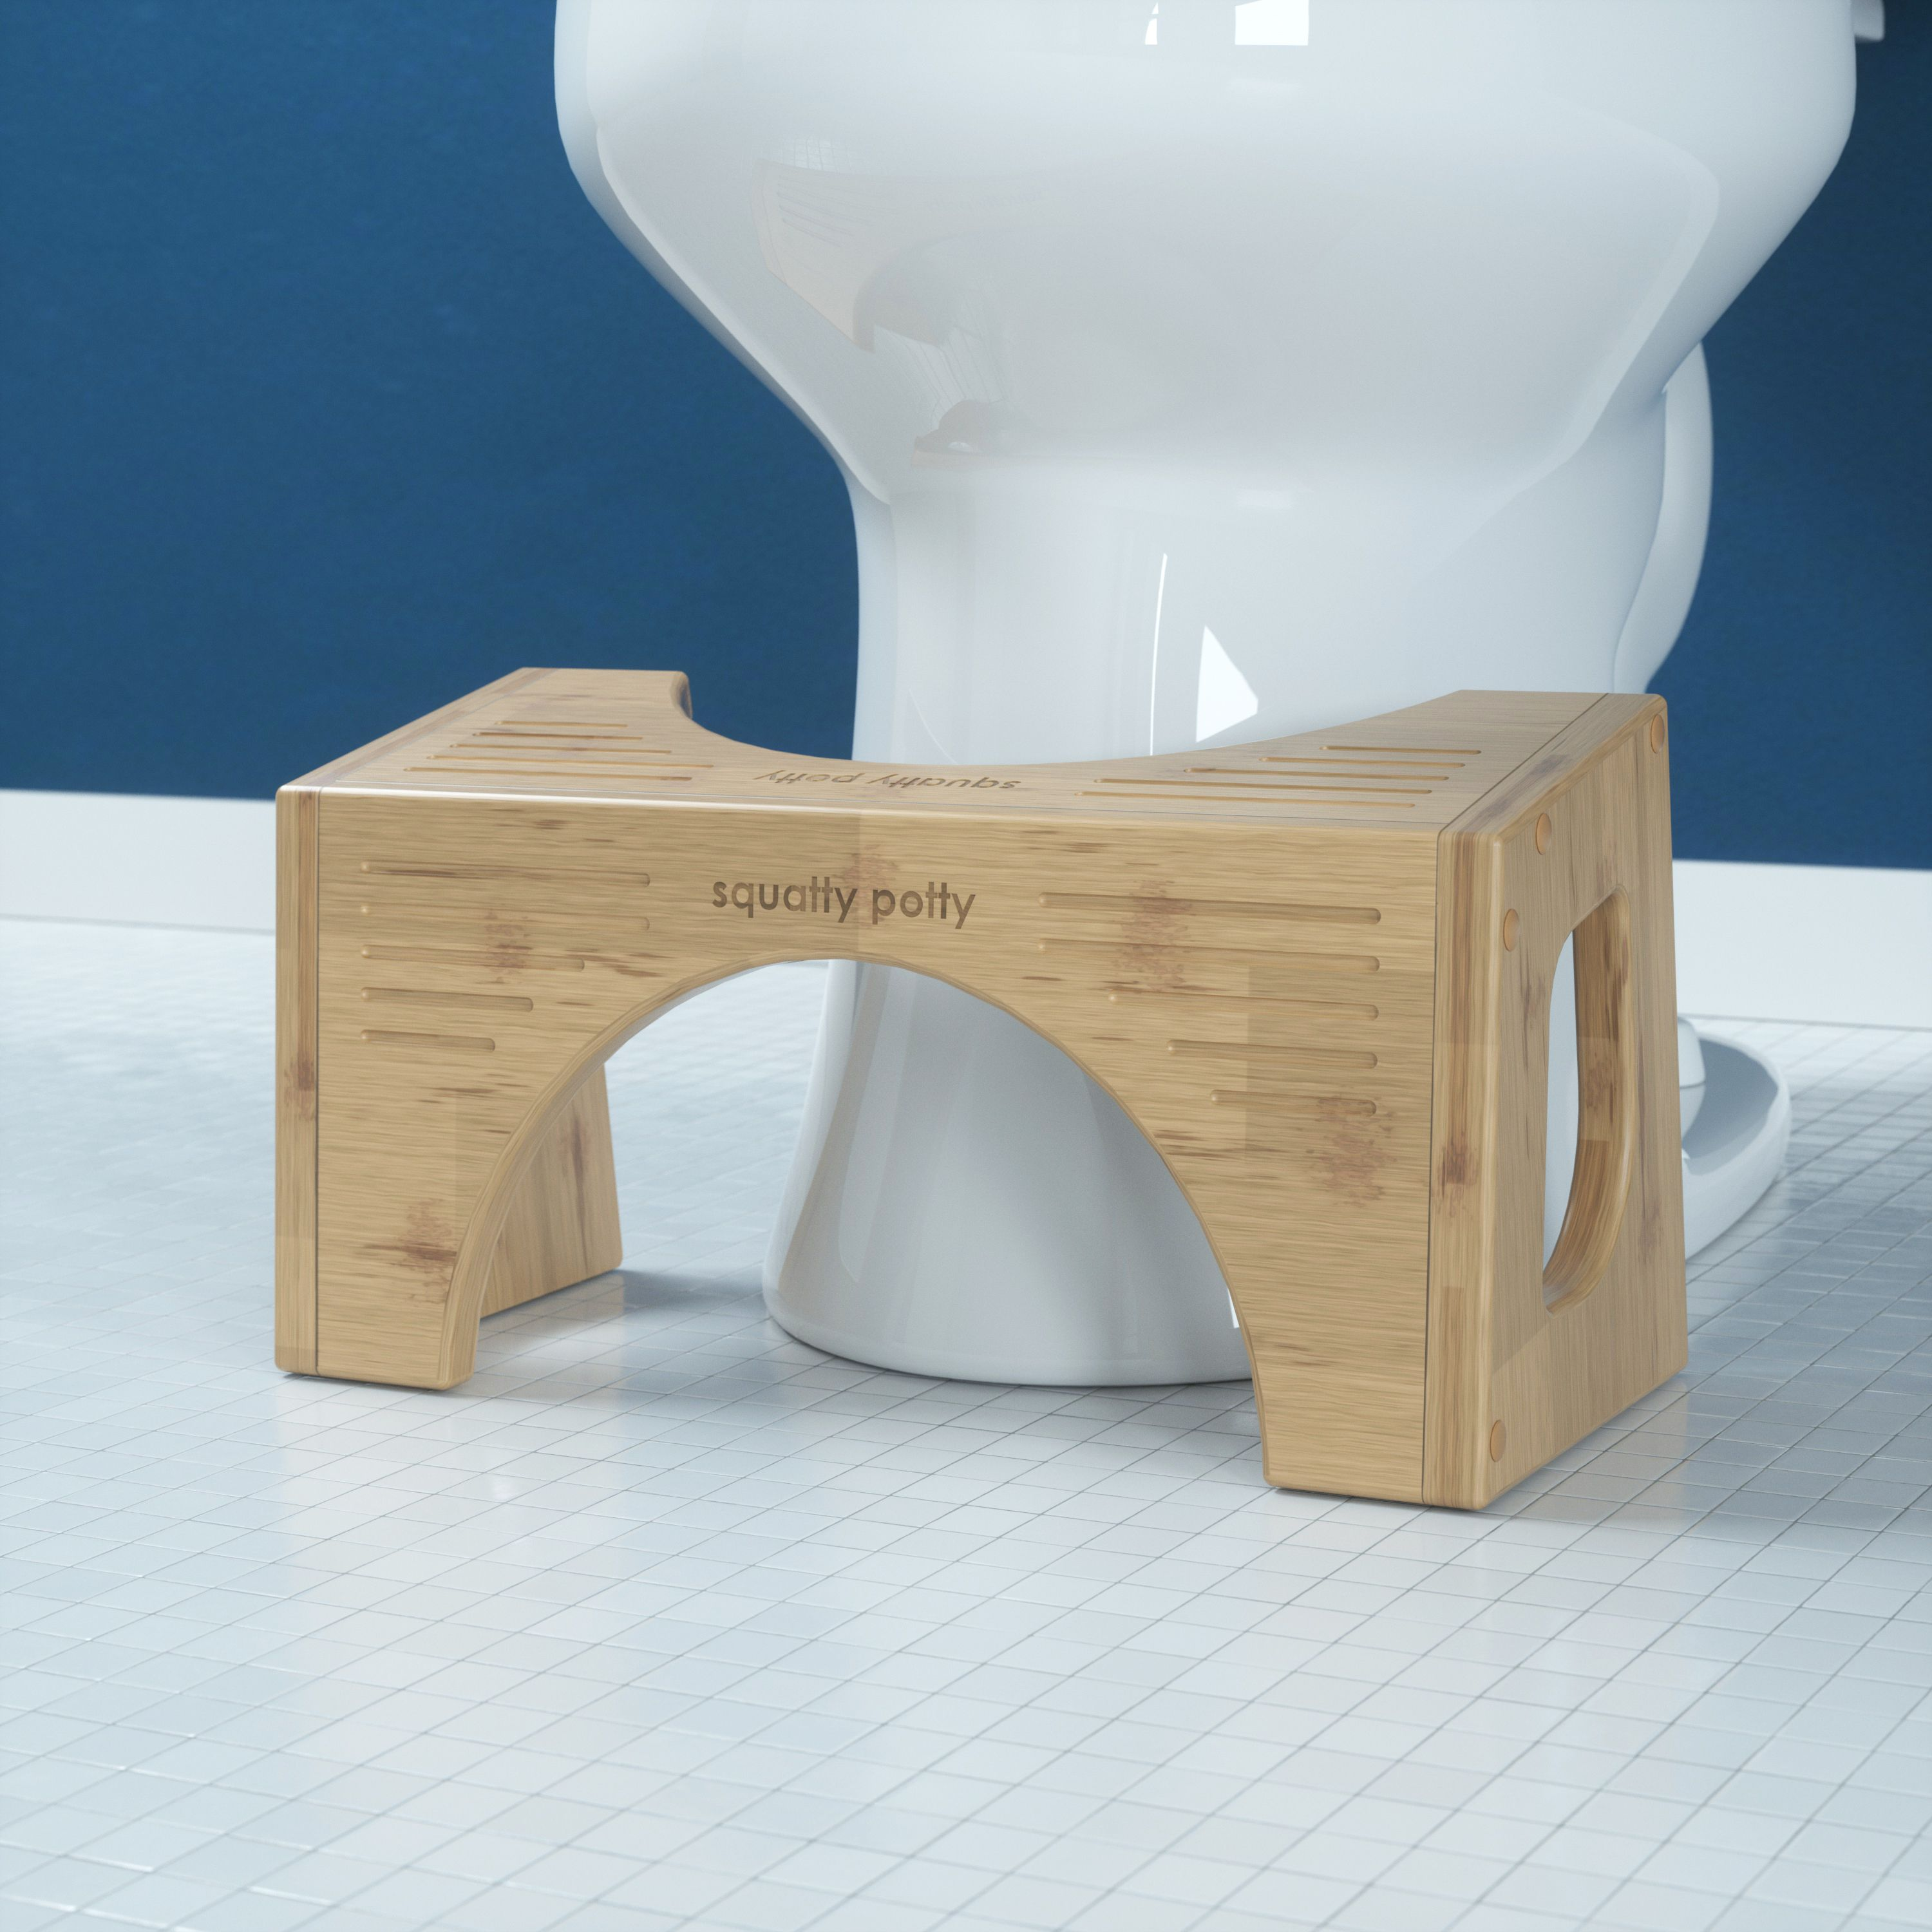 Step Stool For Toilet Adults